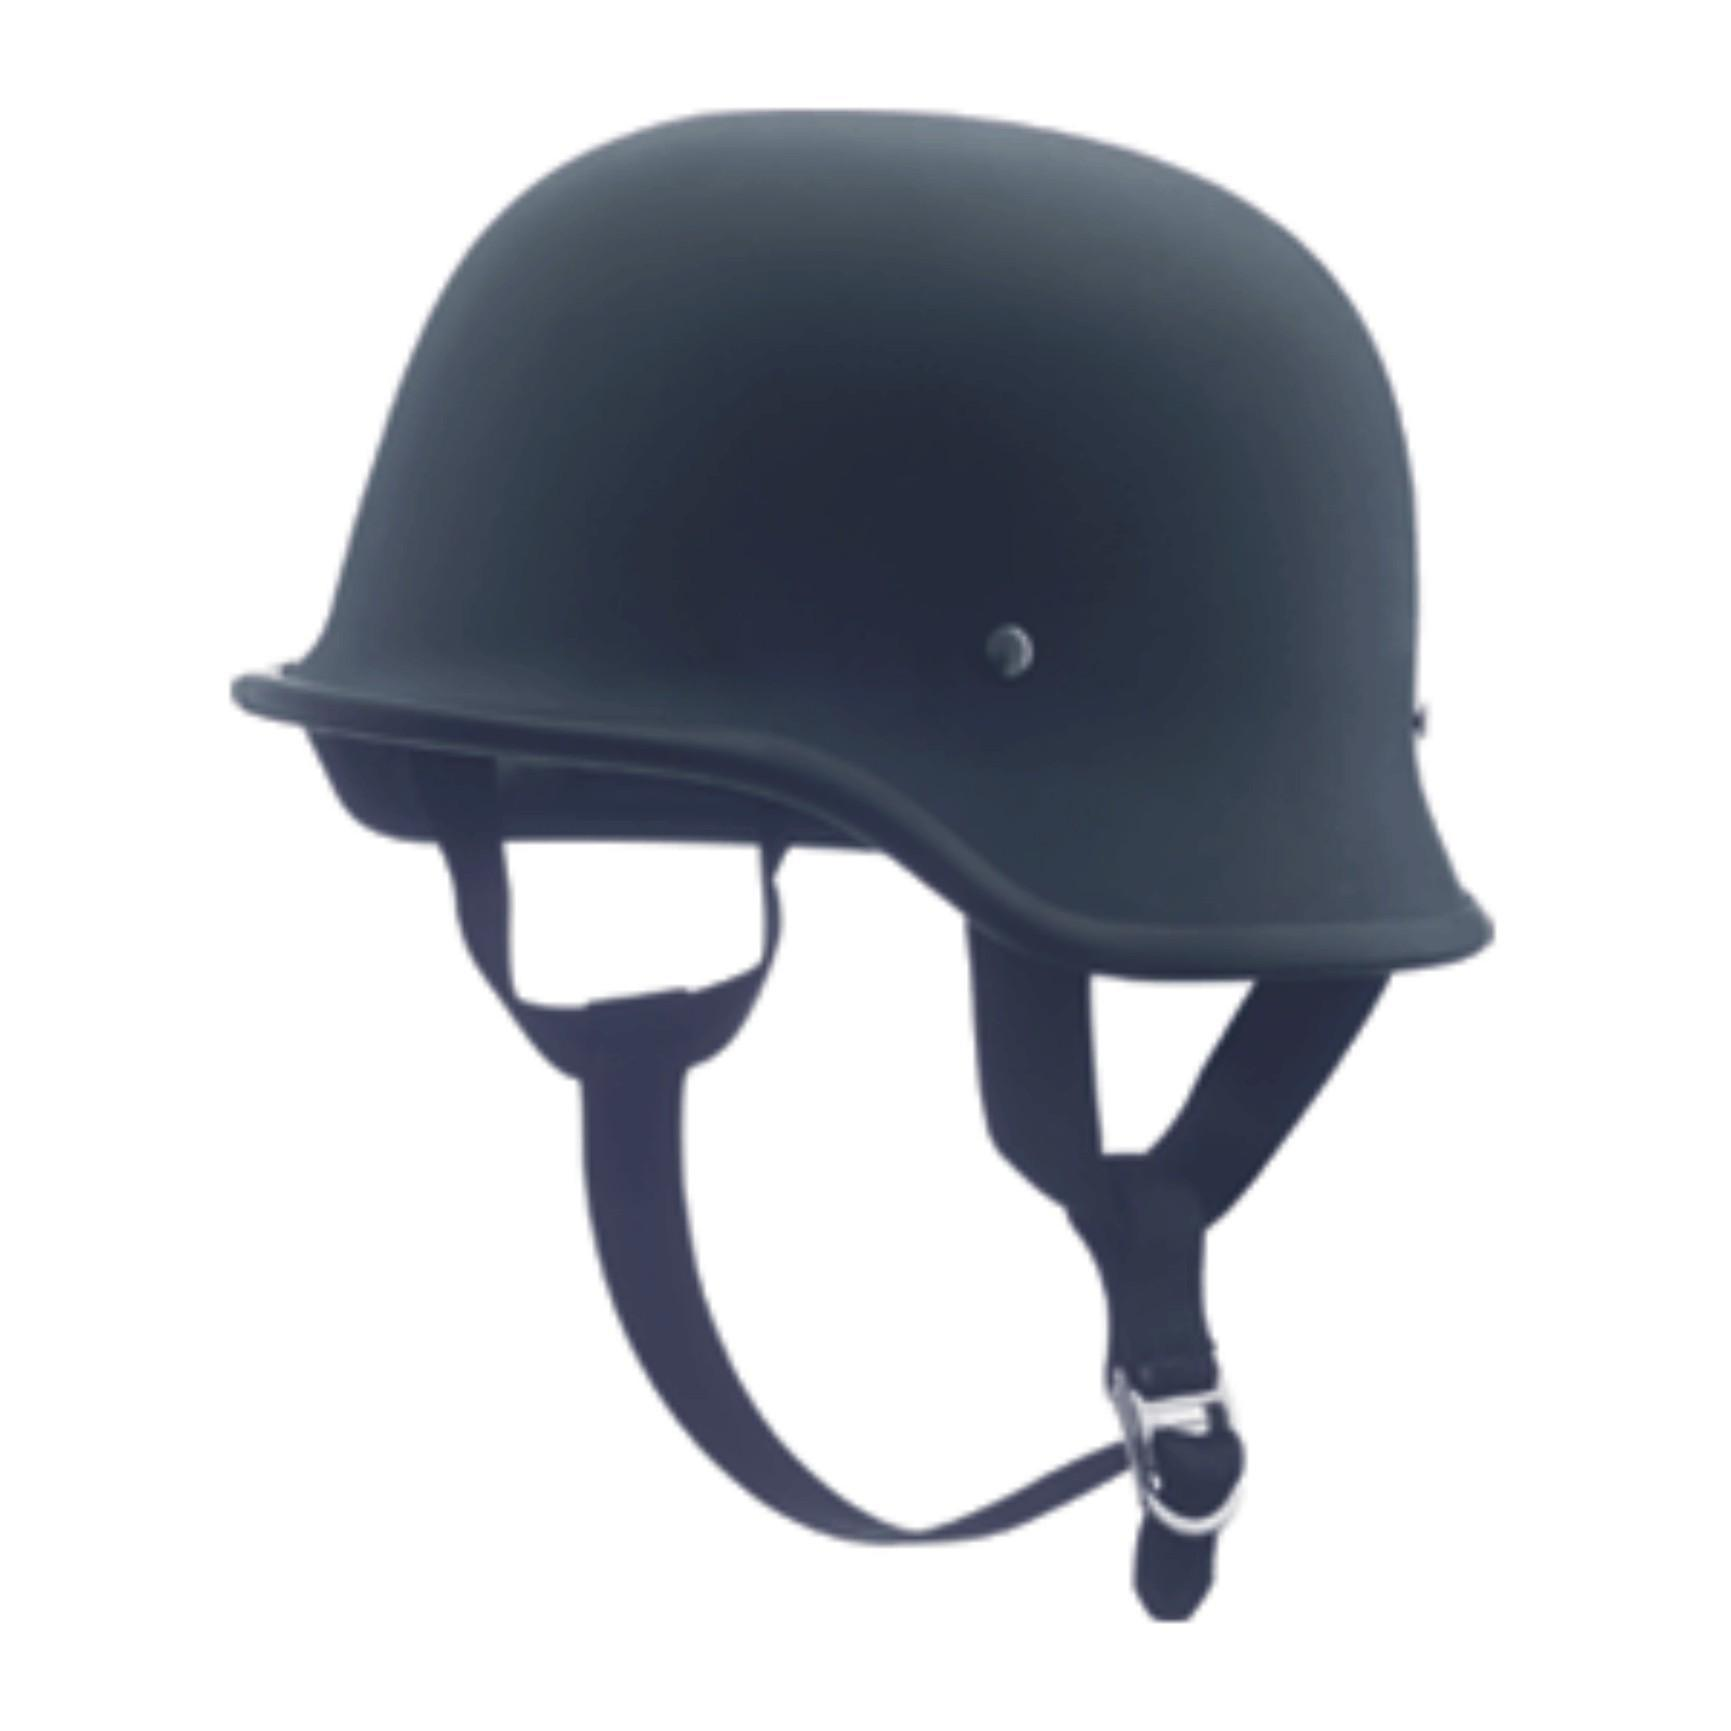 Motorcycle Helmet Manufacturers Motorcycle Helmet Reviews : Motorcycle Helmet Retro Scooter Helmets <strong>for Women</strong> from motorcyclehelmetsreviews.com size 1731 x 1731 jpeg 74kB